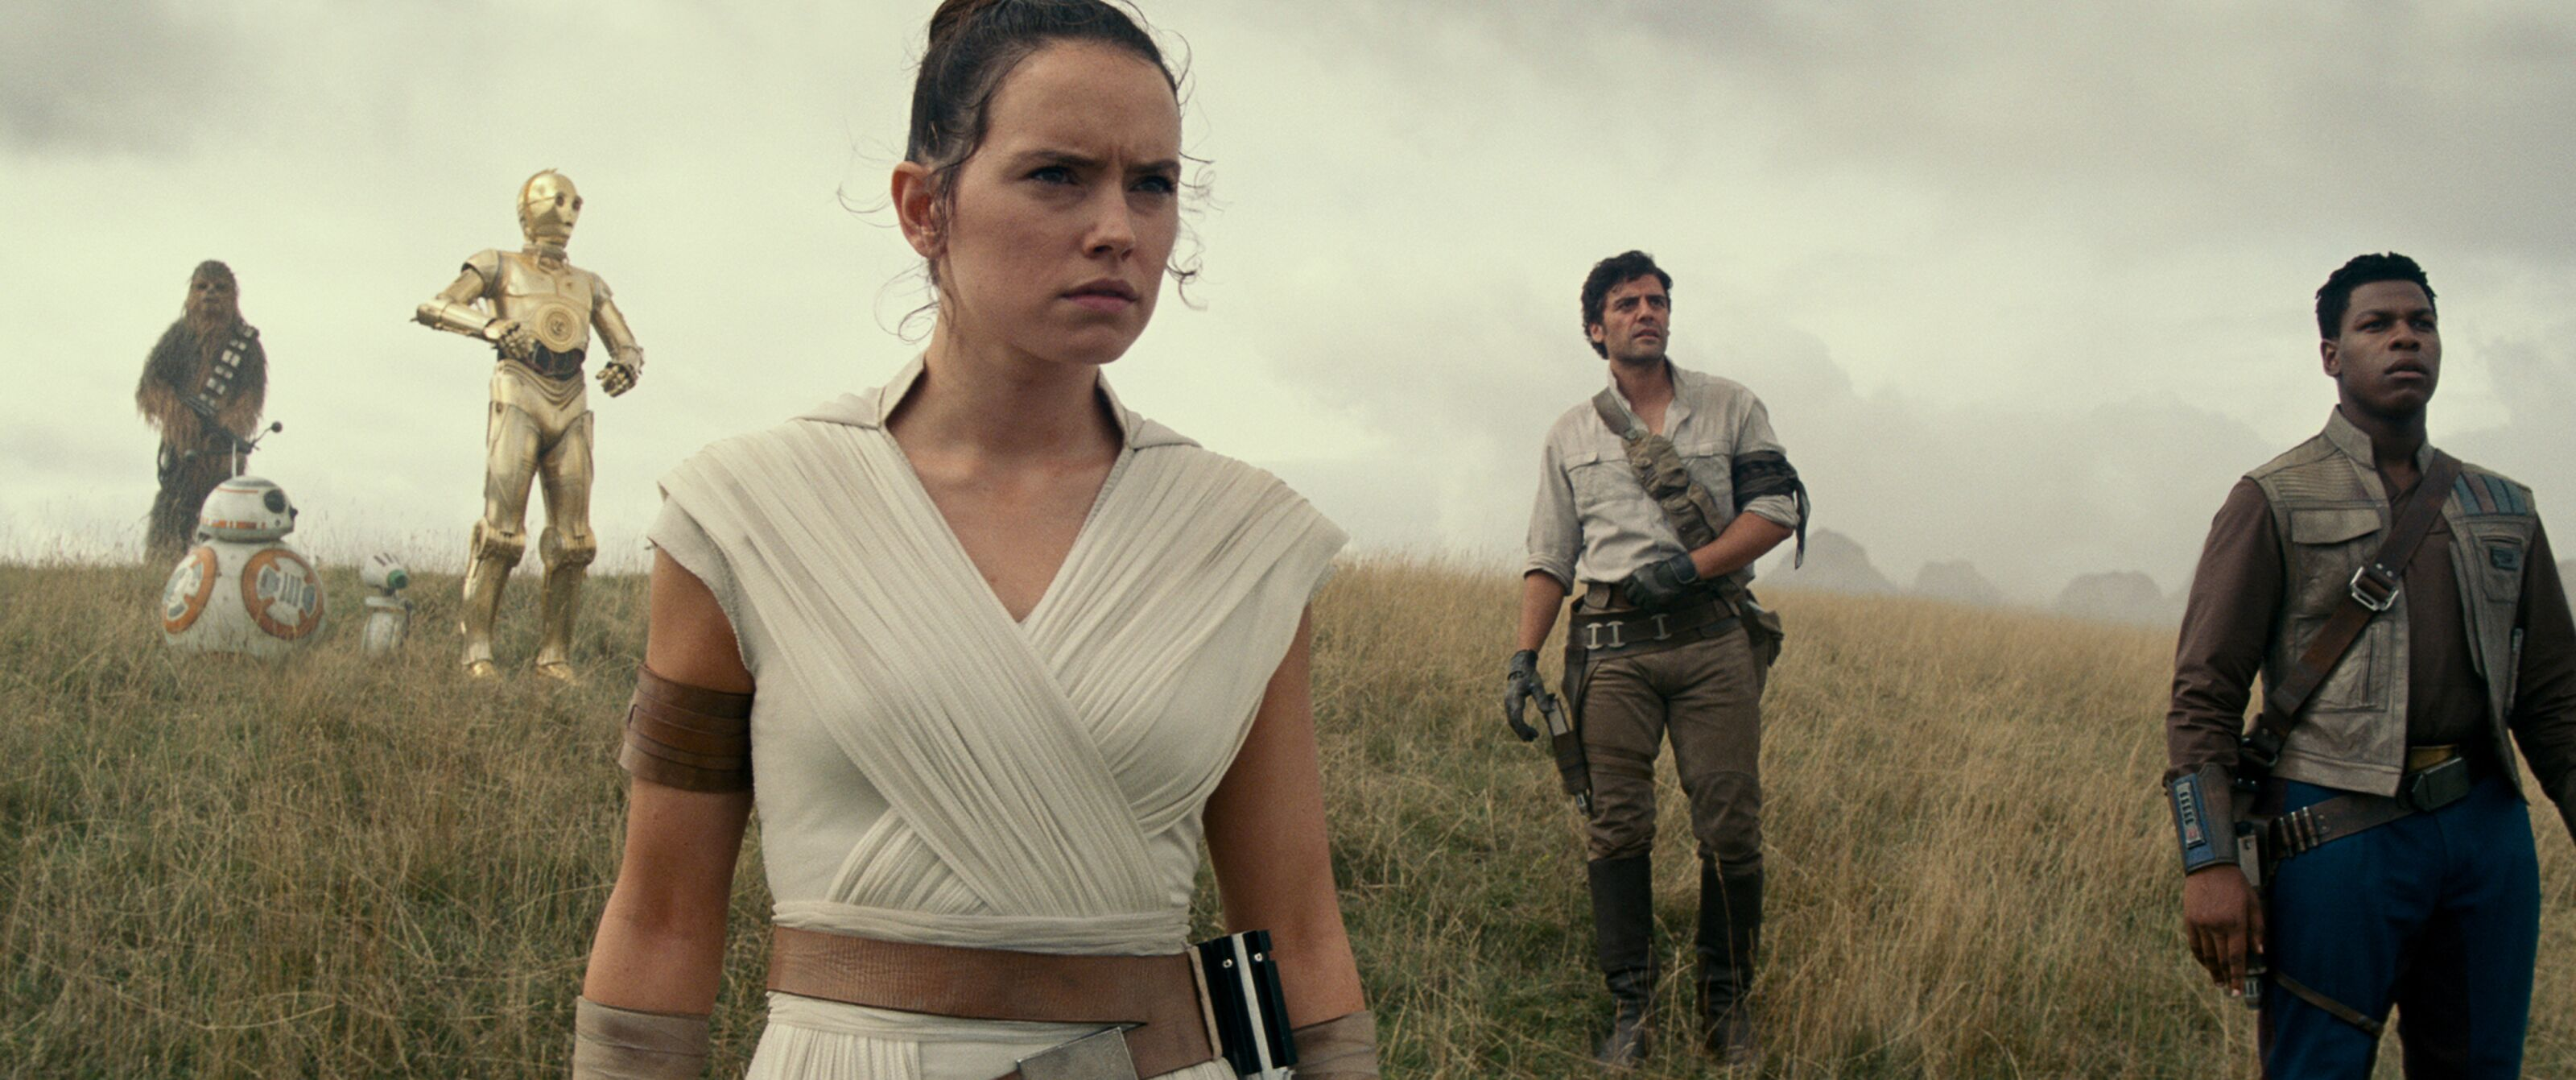 Star Wars: The Skywalker Saga finale is not the end for some characters